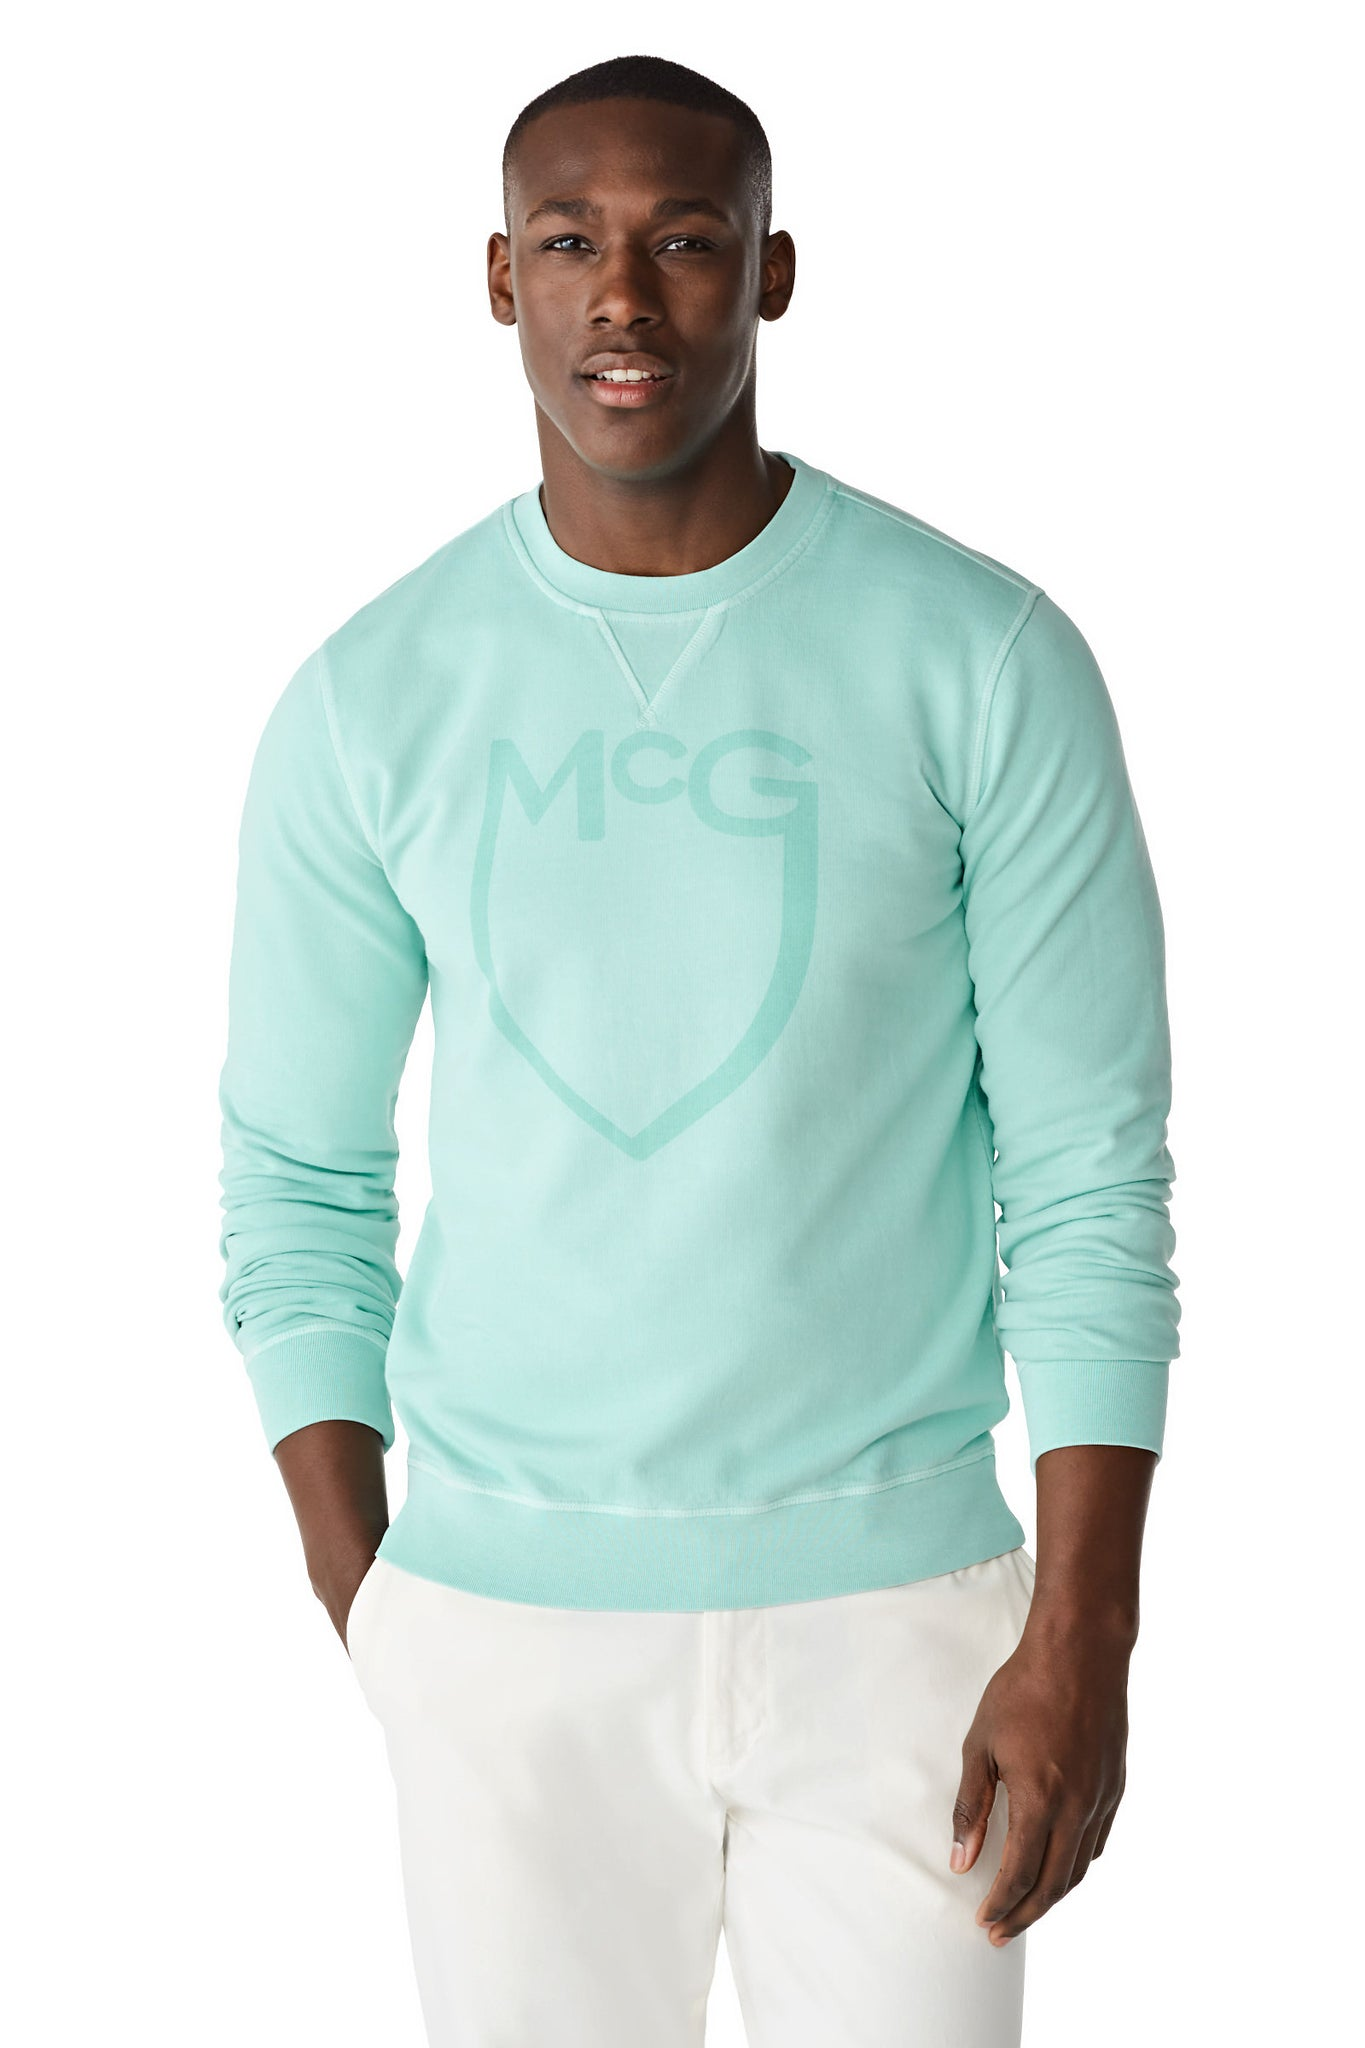 McG Crew neck sweater with logo